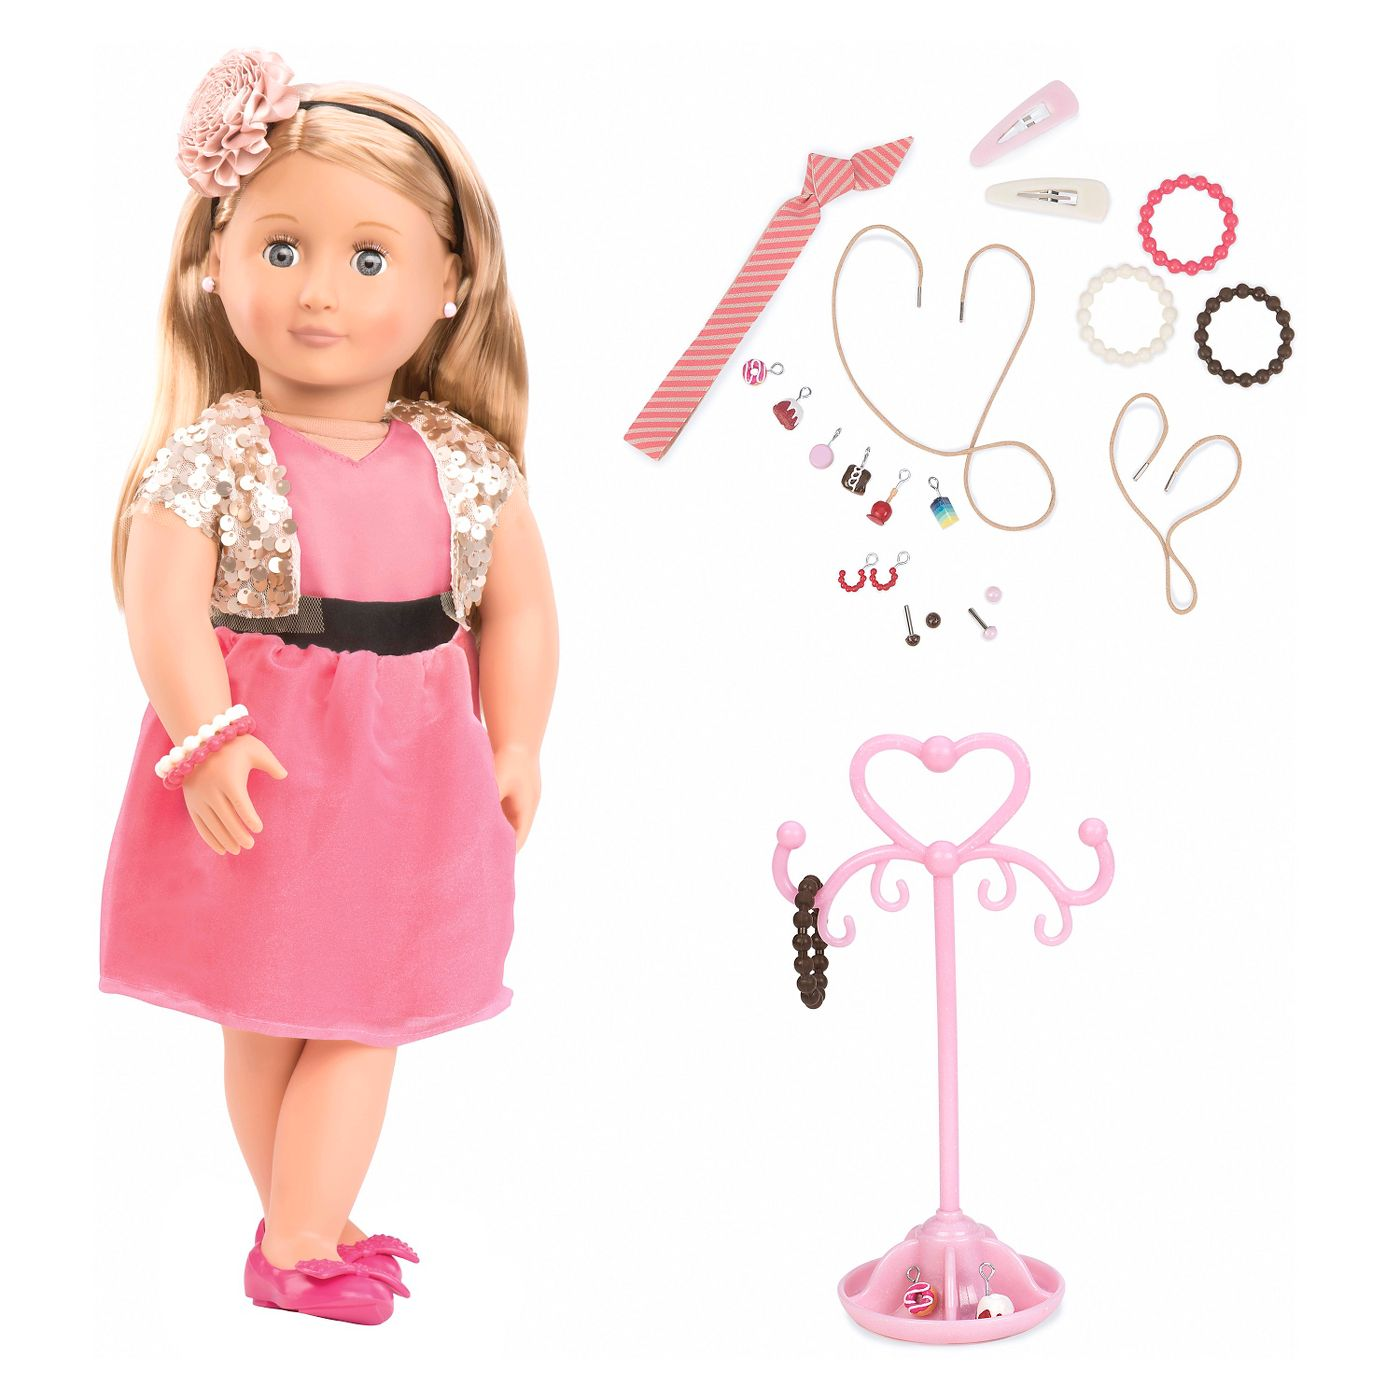 Our Generation Jewelry Doll - Audra - image 1 of 7